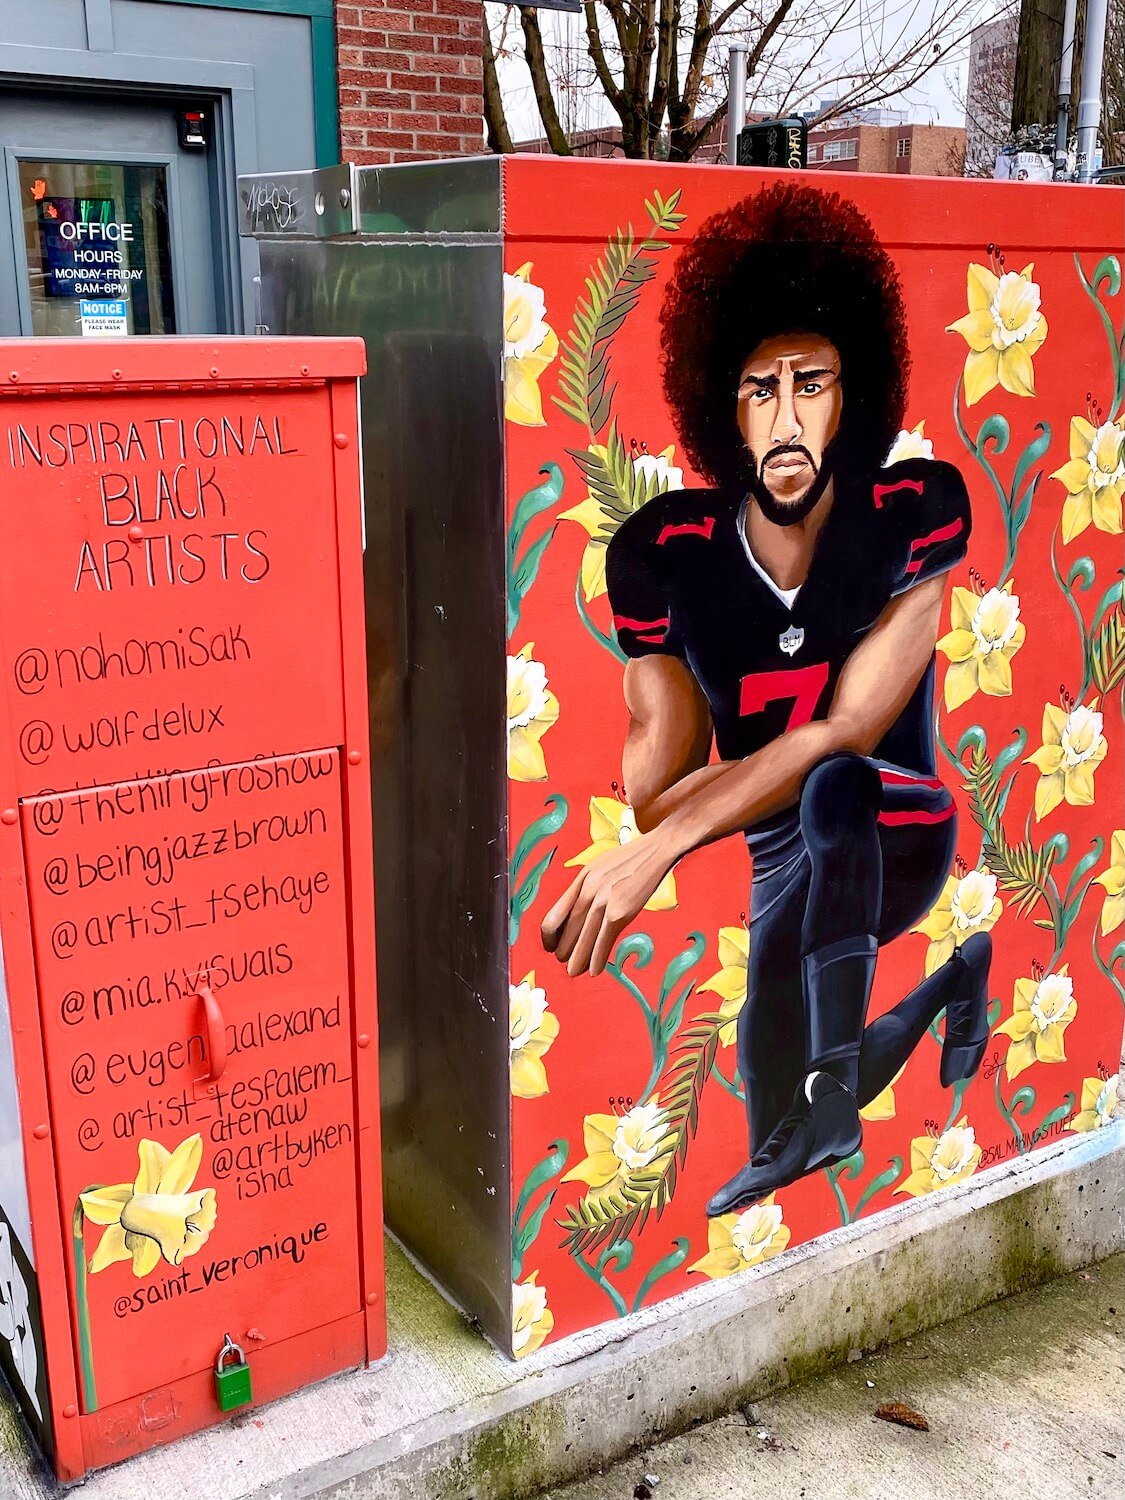 A mural of Colin Kaepernick is painted on an electrical unit and the colors are bright red background with black lettering and yellow daffodils.  The football player is wearing a black and red jersey and has his famous large black teased out hair.